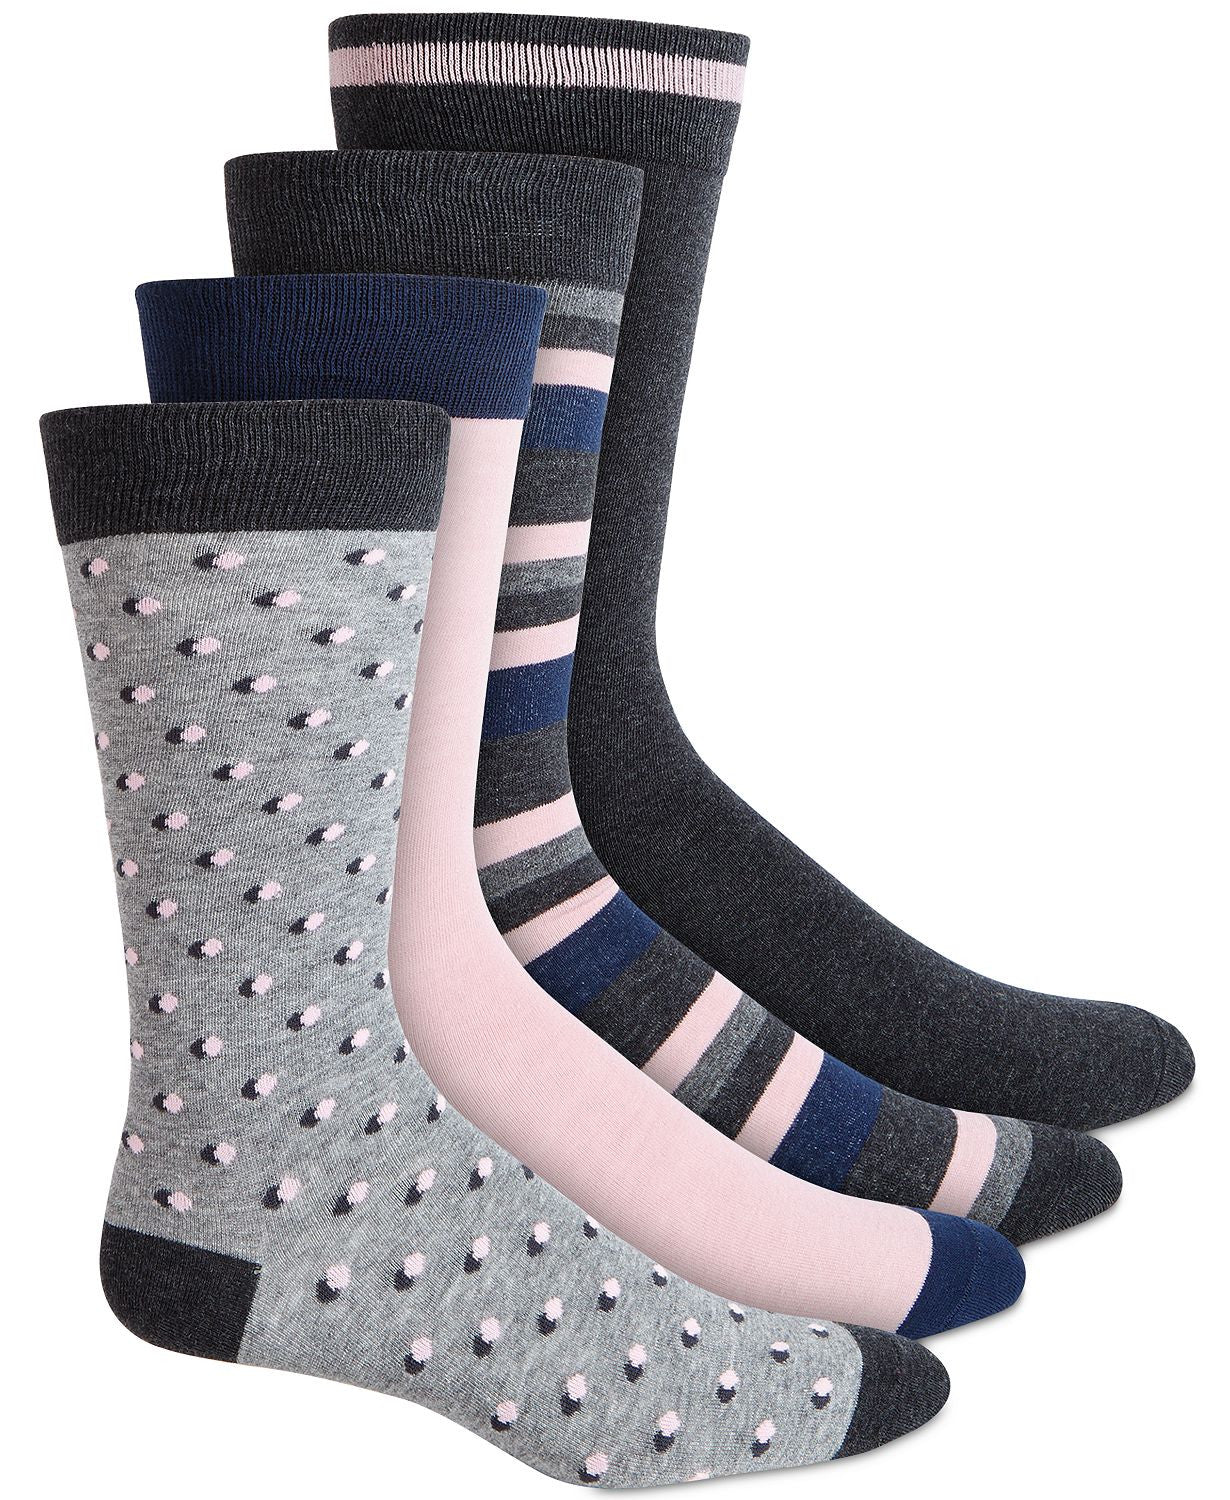 BAR III 4 pk Socks Grey Pink